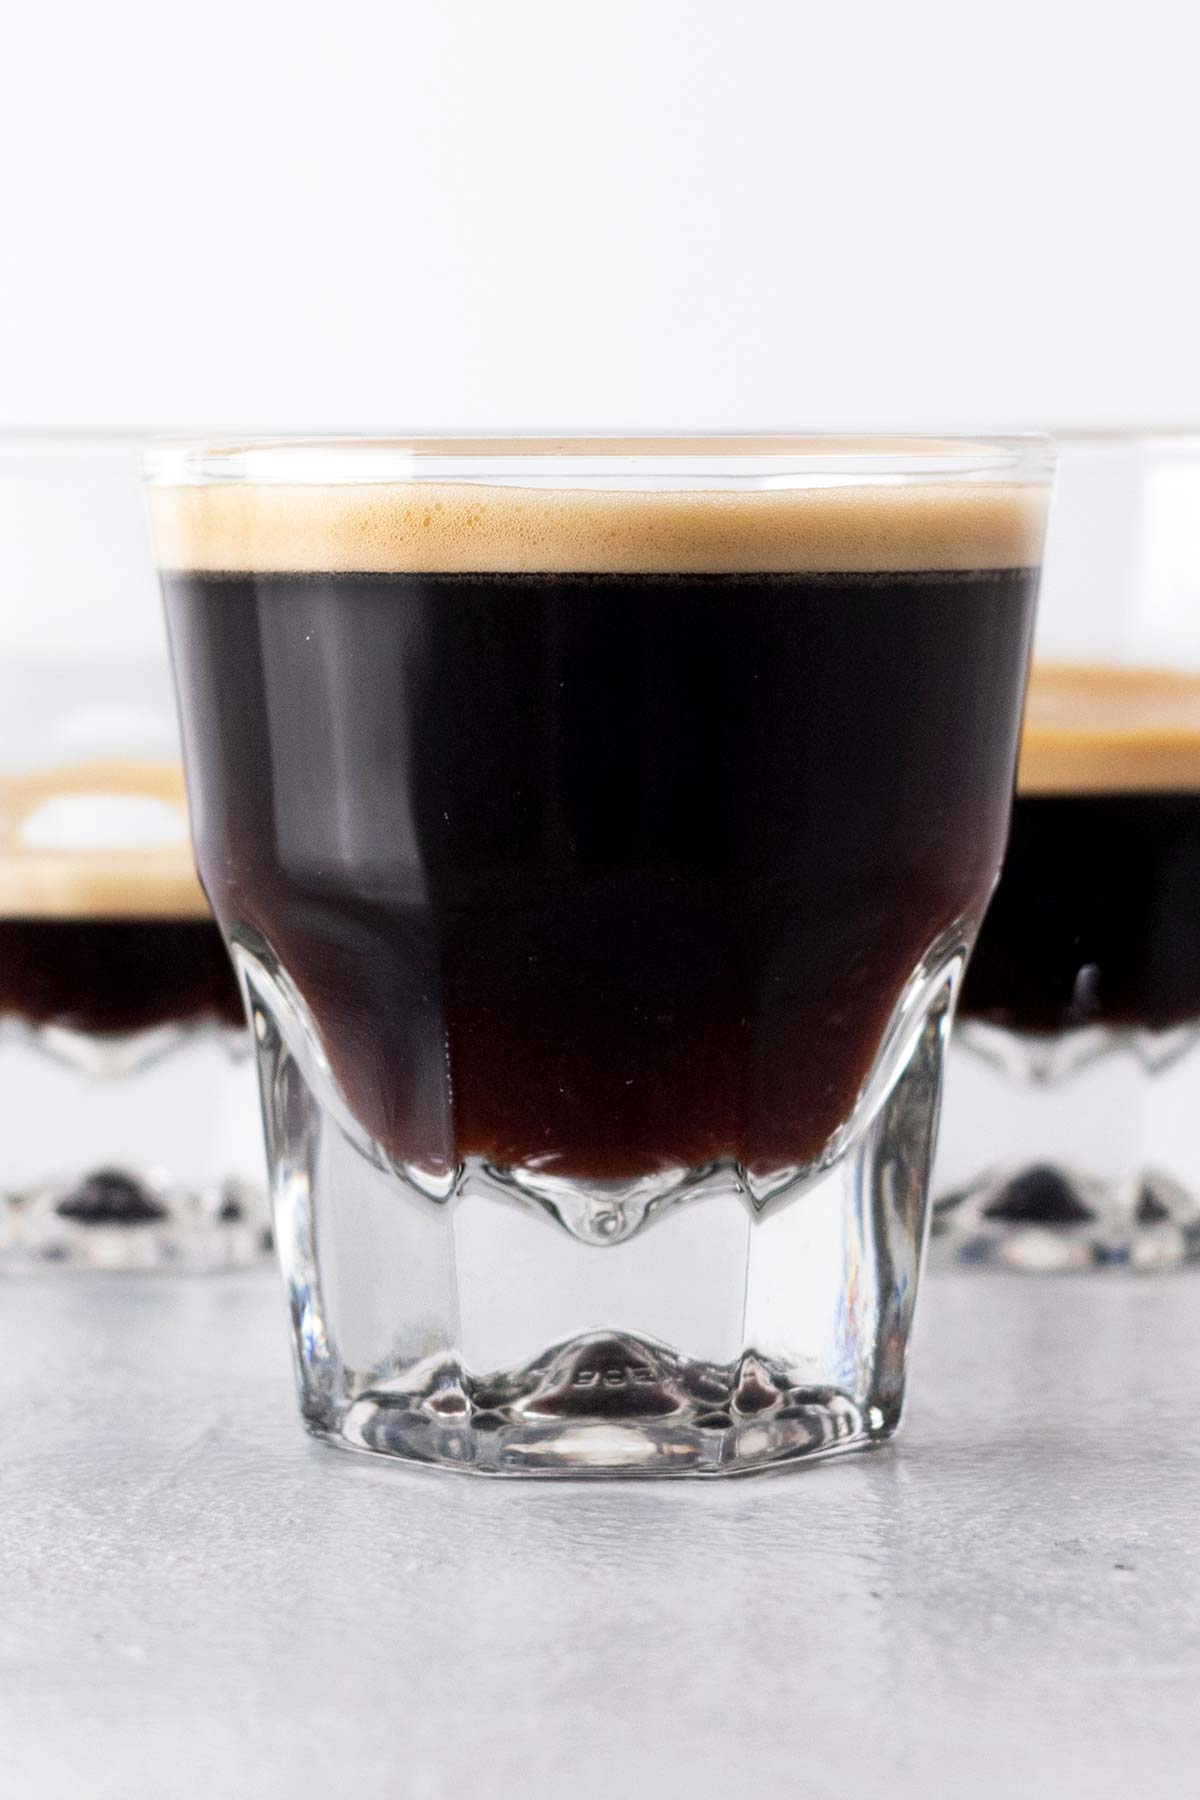 Lungo shots in an espresso cup.